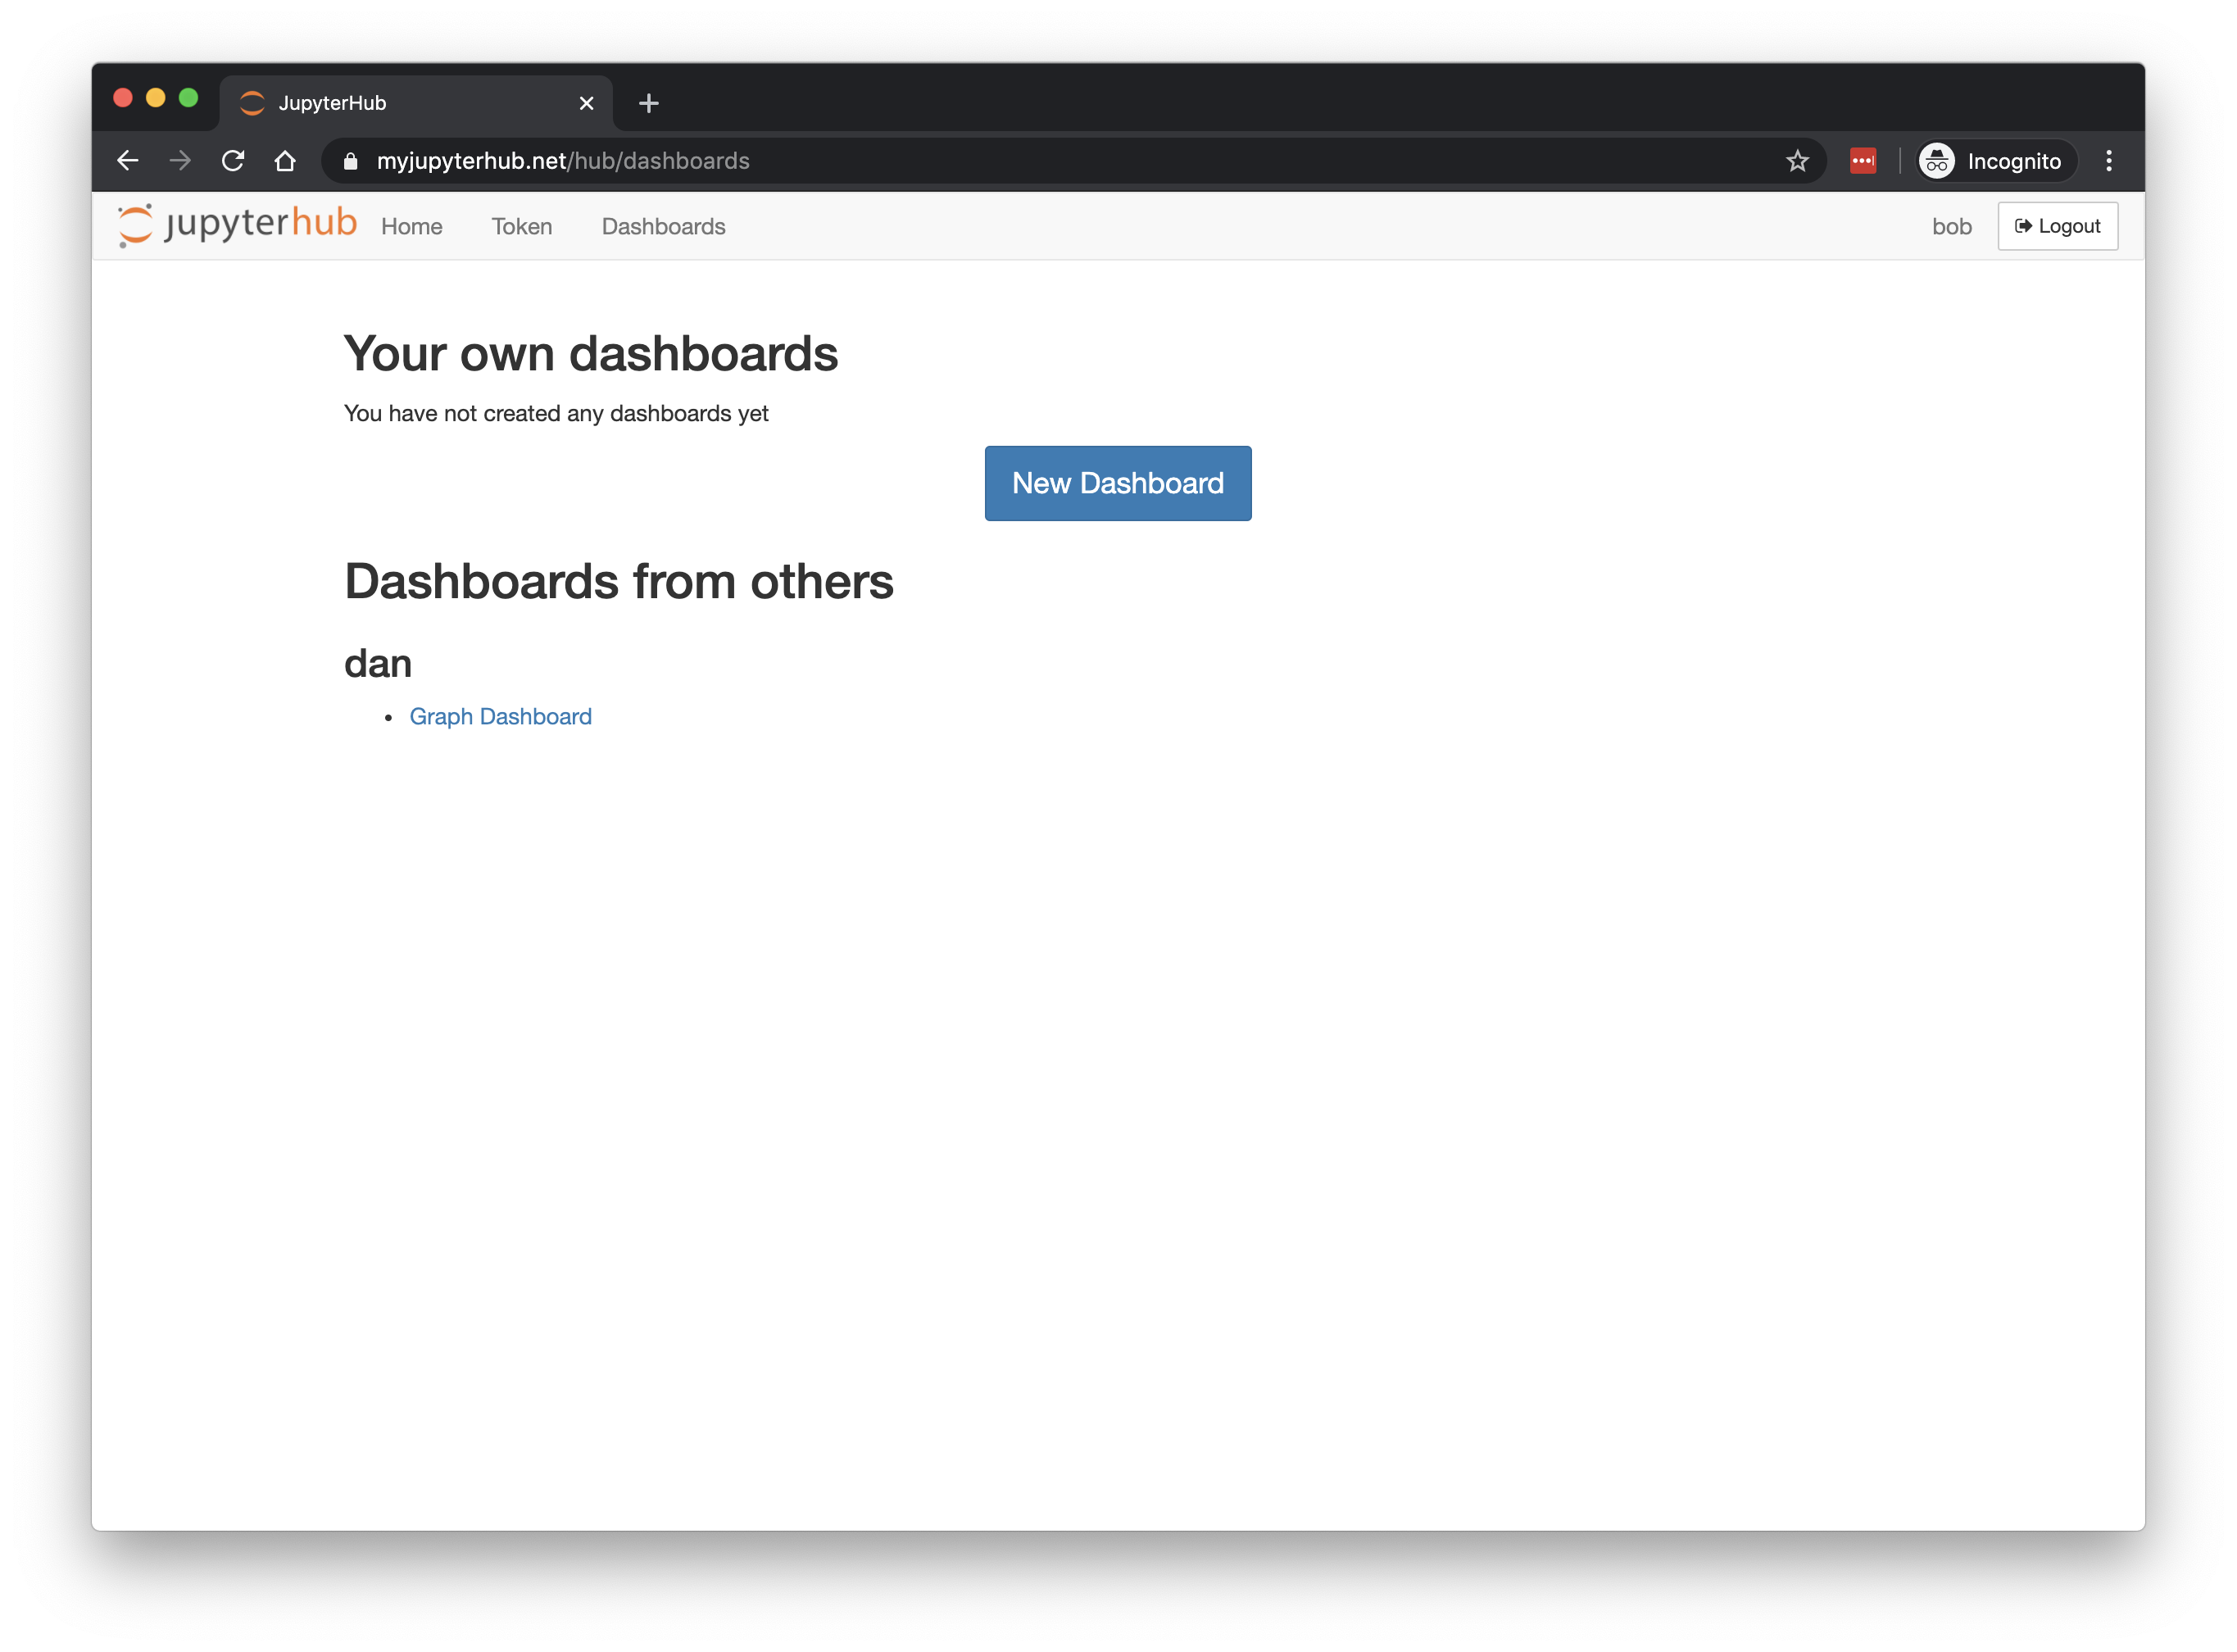 Other User sees dashboard